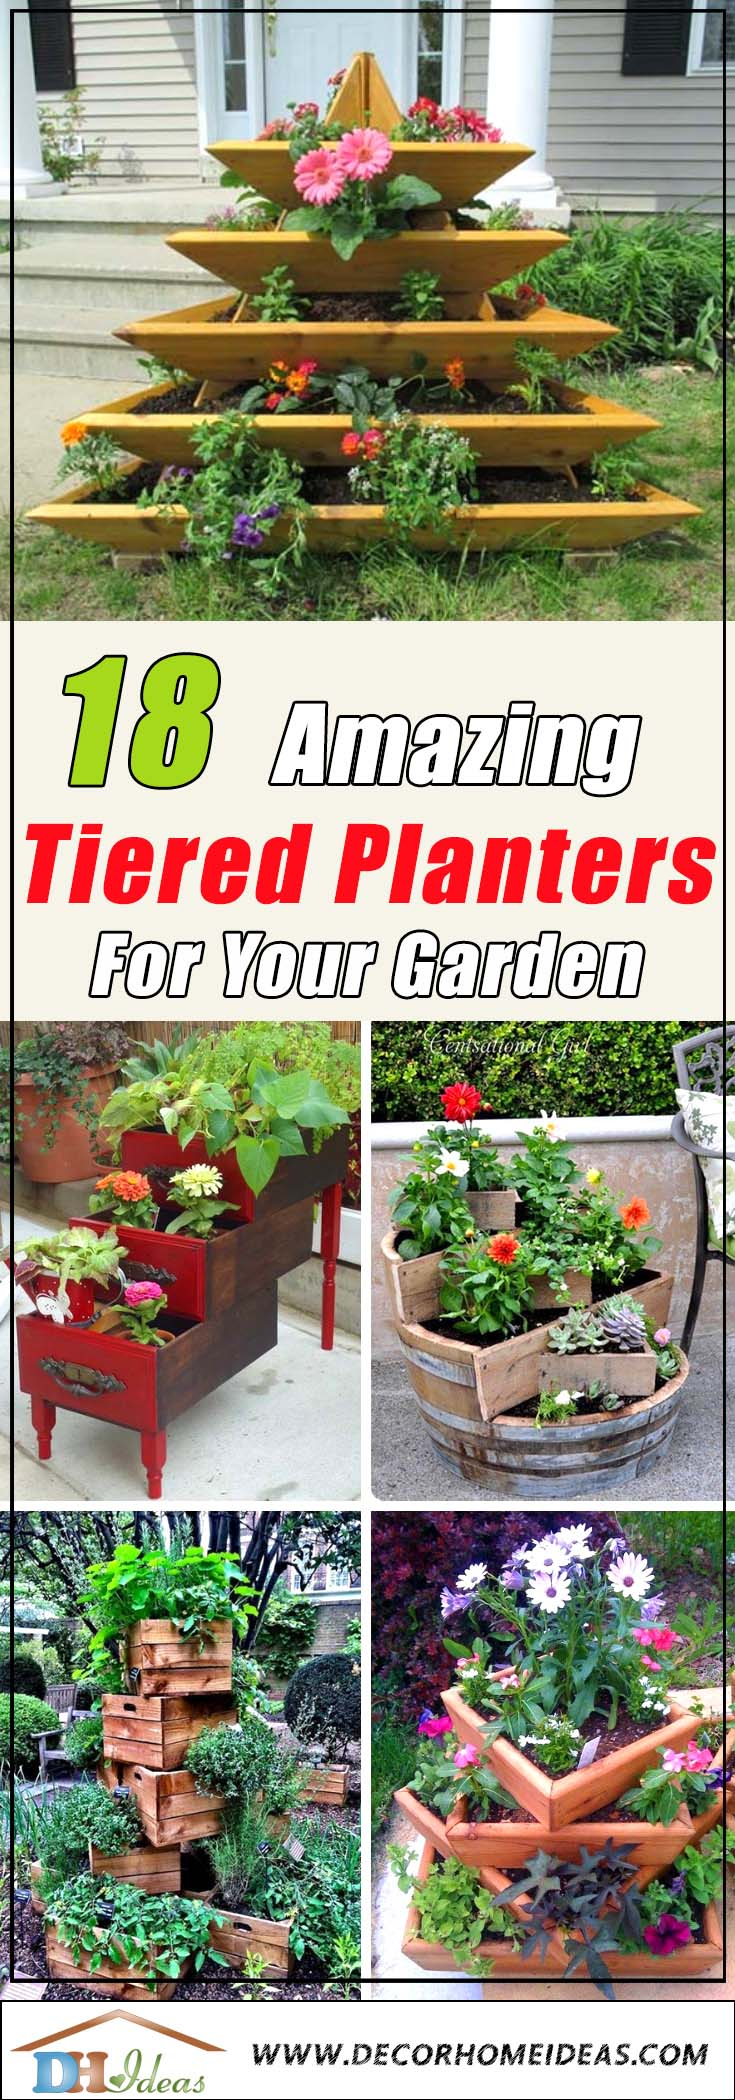 18 Amazing Tiered Planter Ideas #tieredplanter #flowerplanter #planter #flowerpot #decorhomeideas